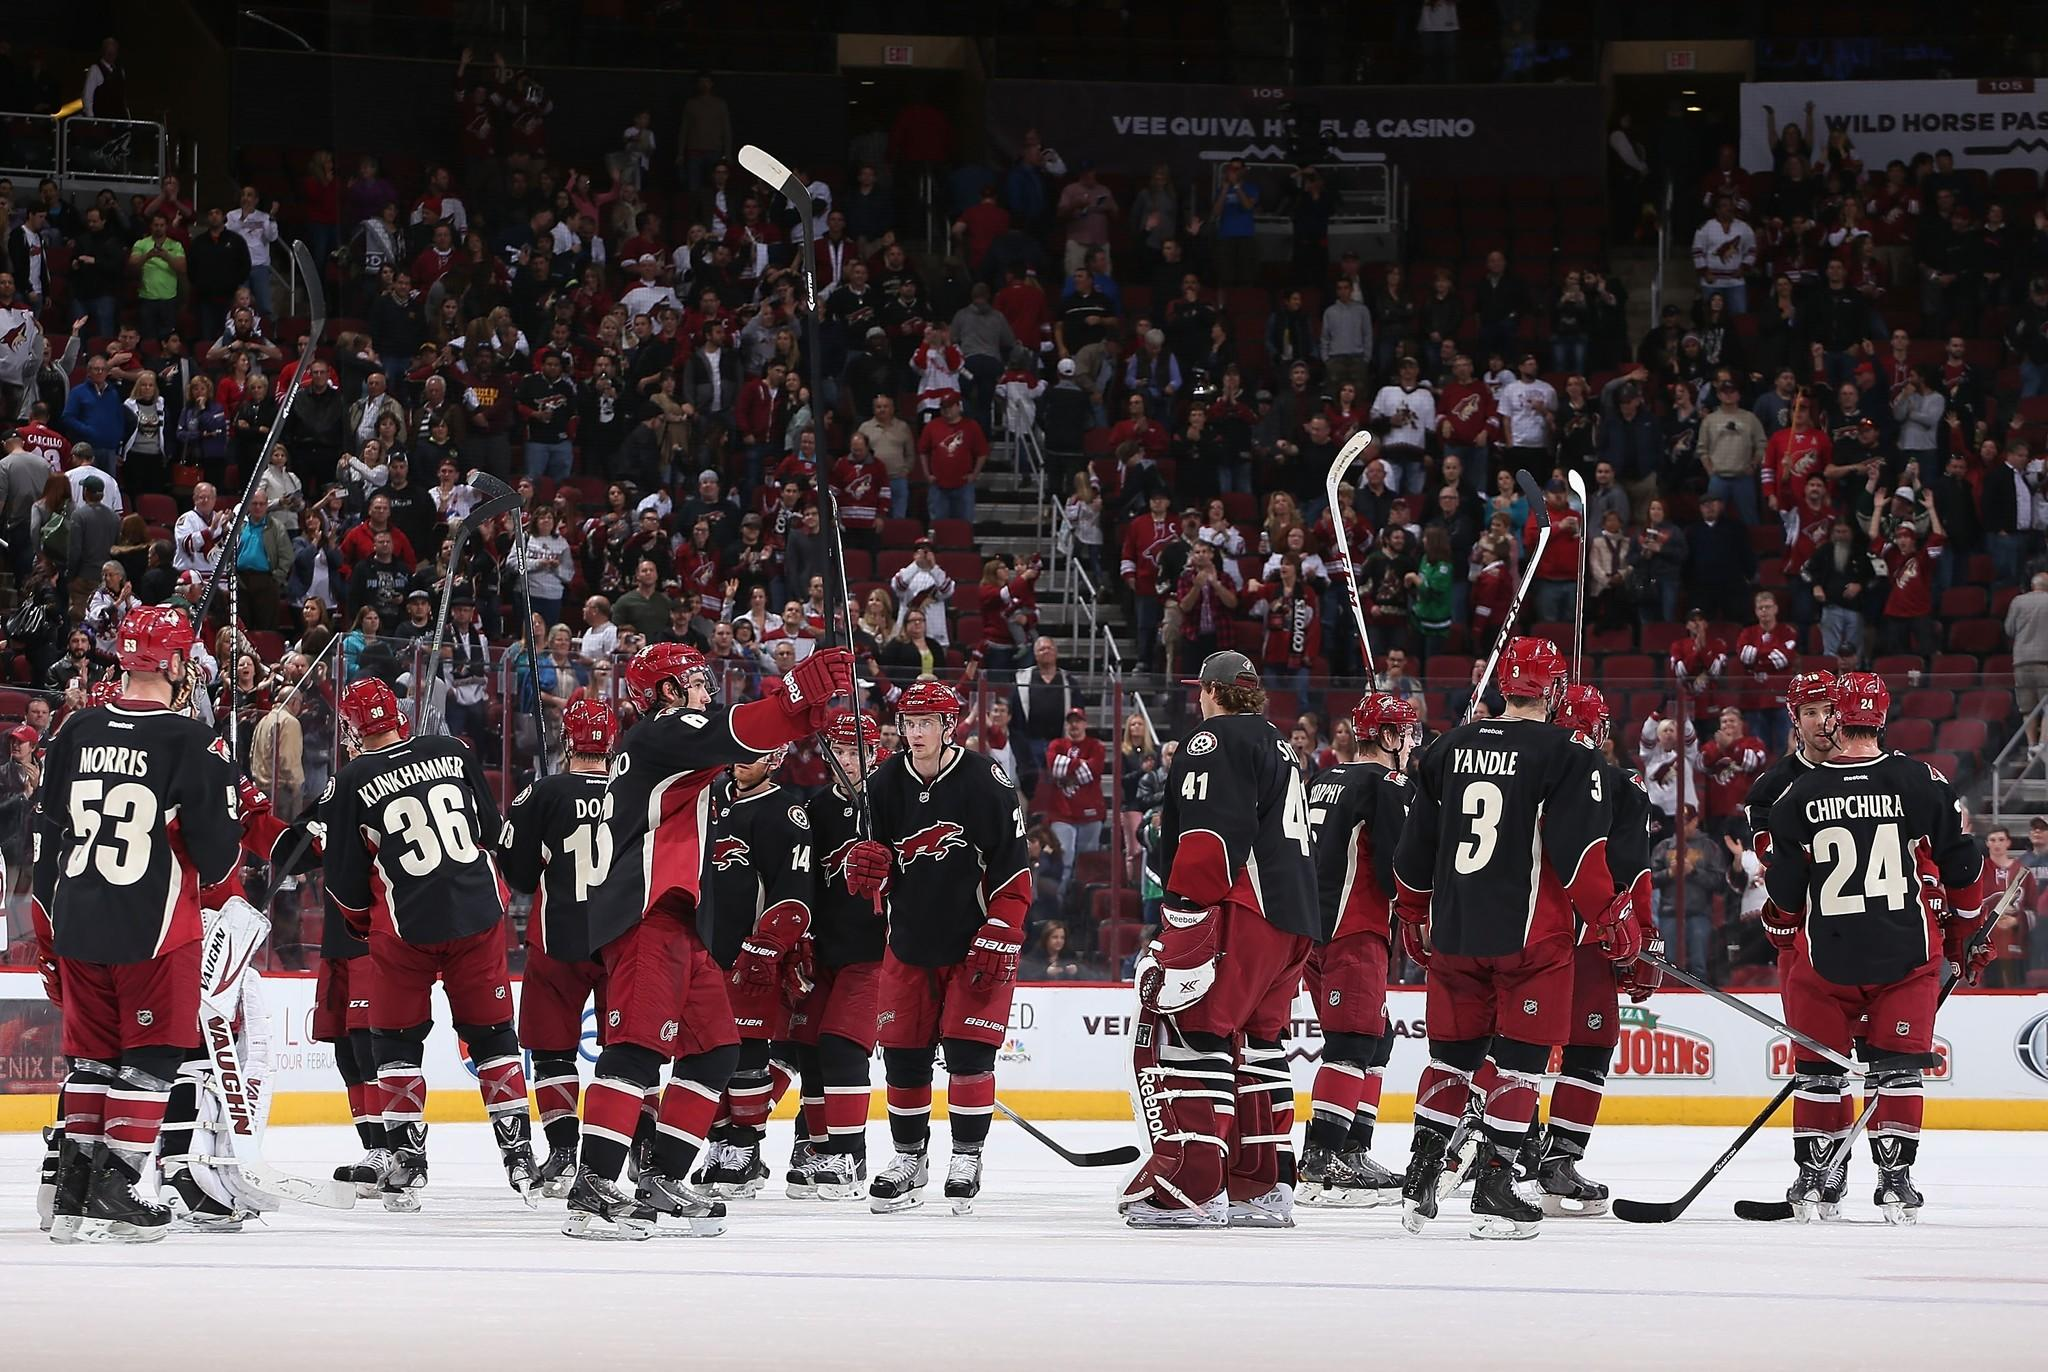 The Phoenix Coyotes salute the fans after defeating the Los Angeles Kings.